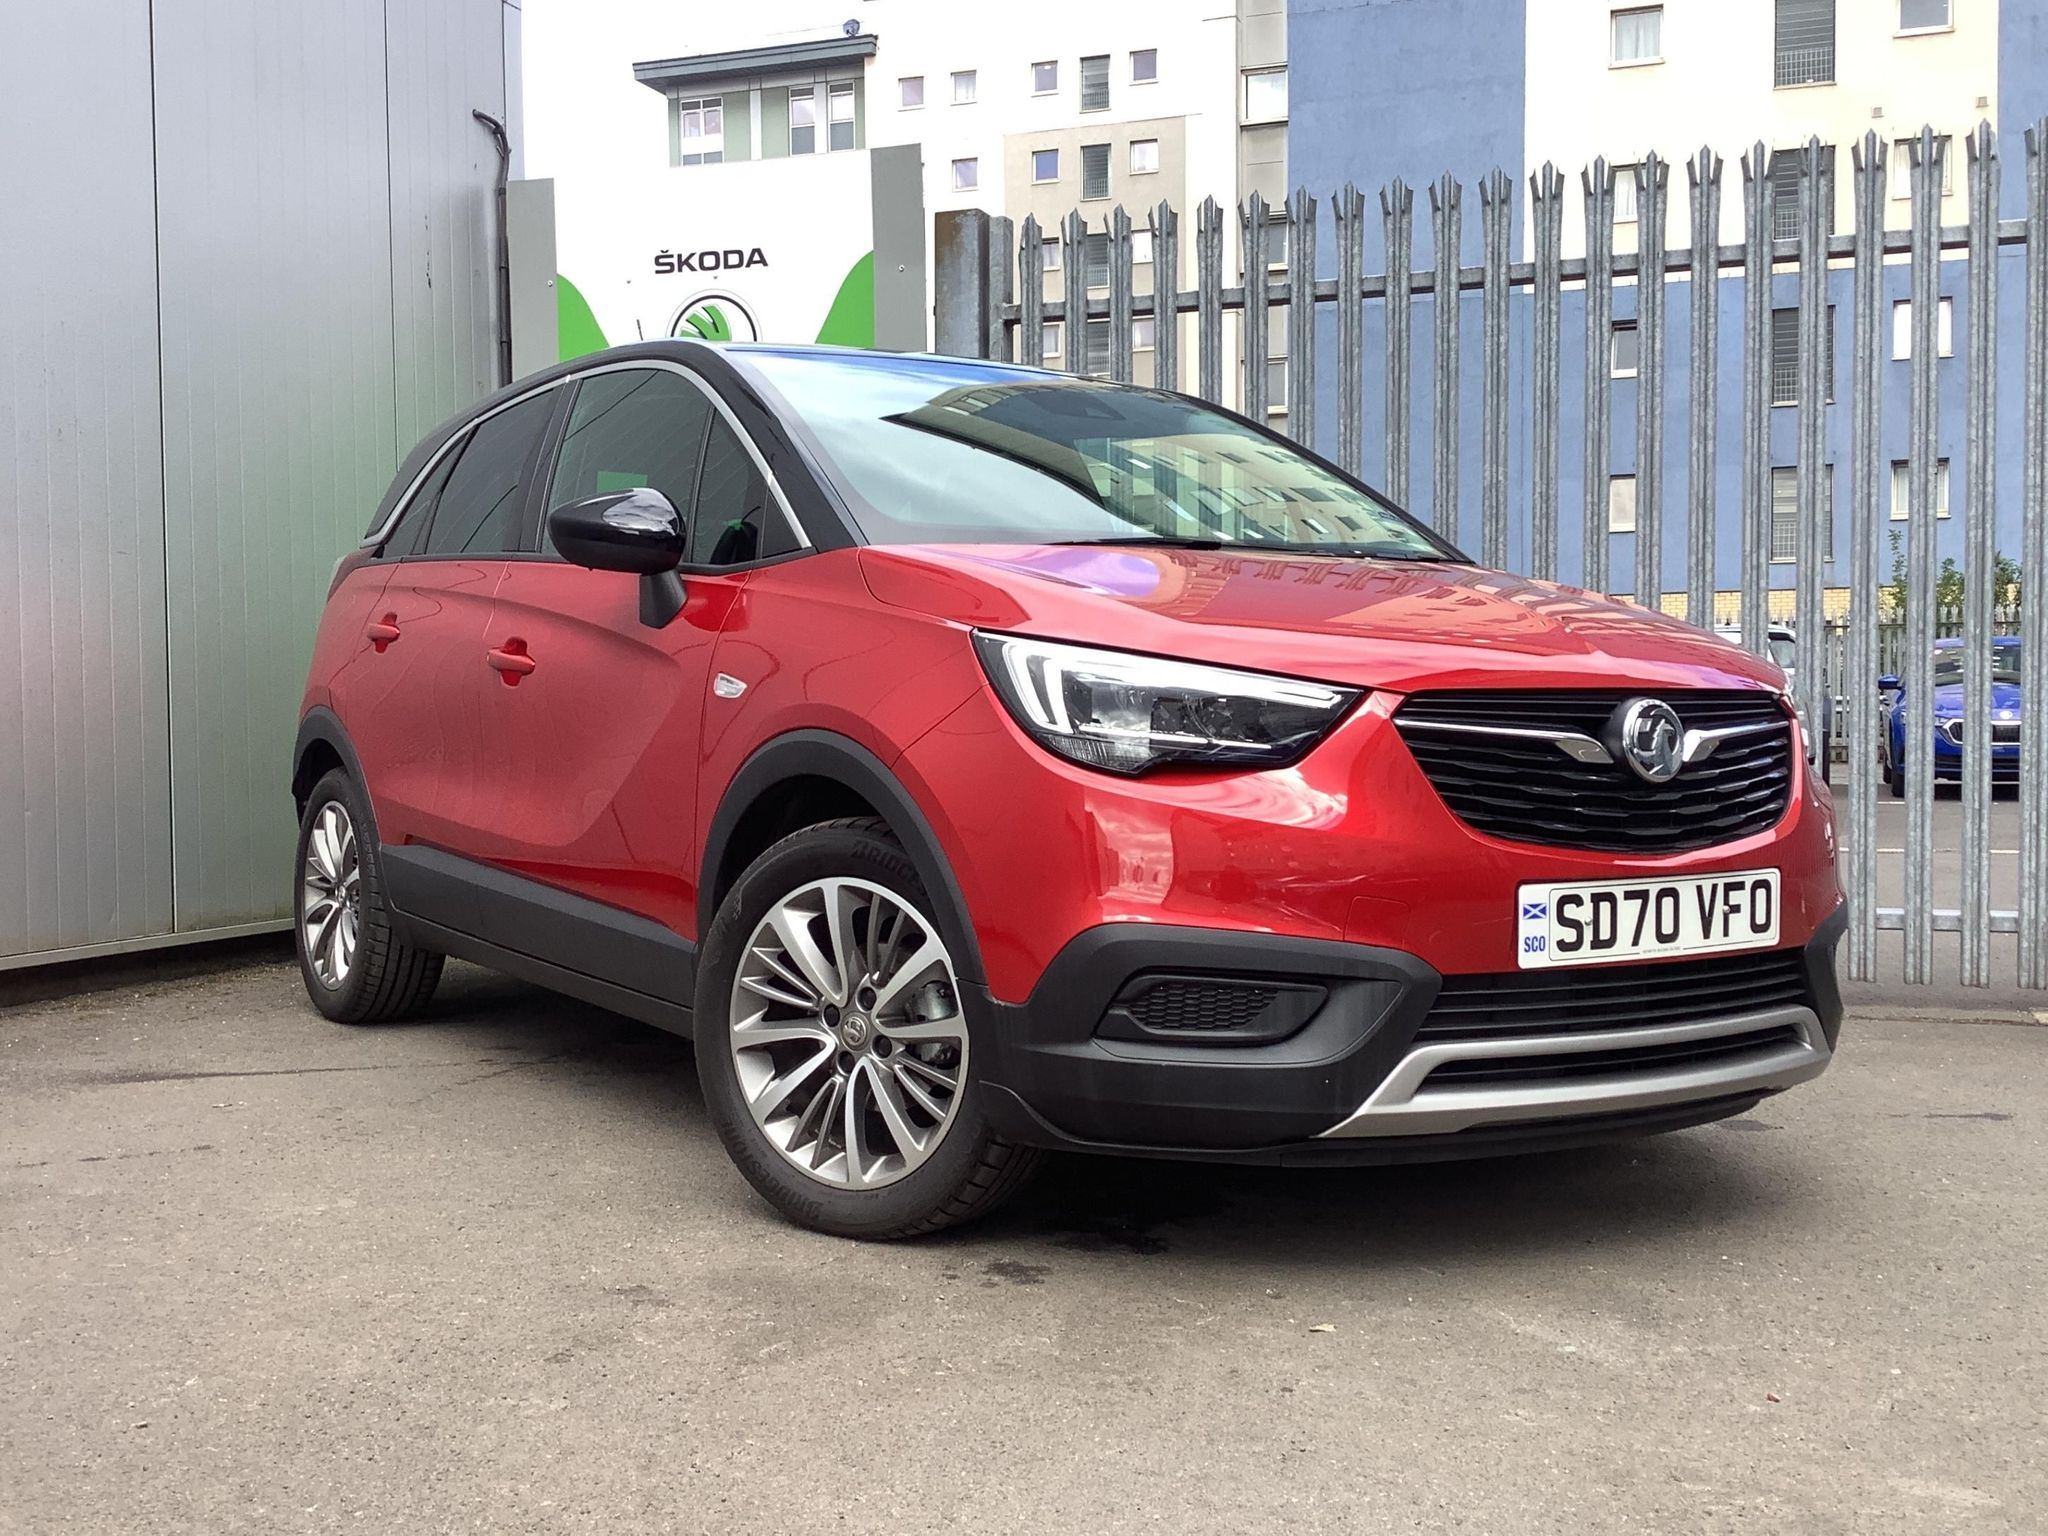 VAUXHALL CROSSLAND X GRIFFIN SUV 1.2i (83ps) Griffin